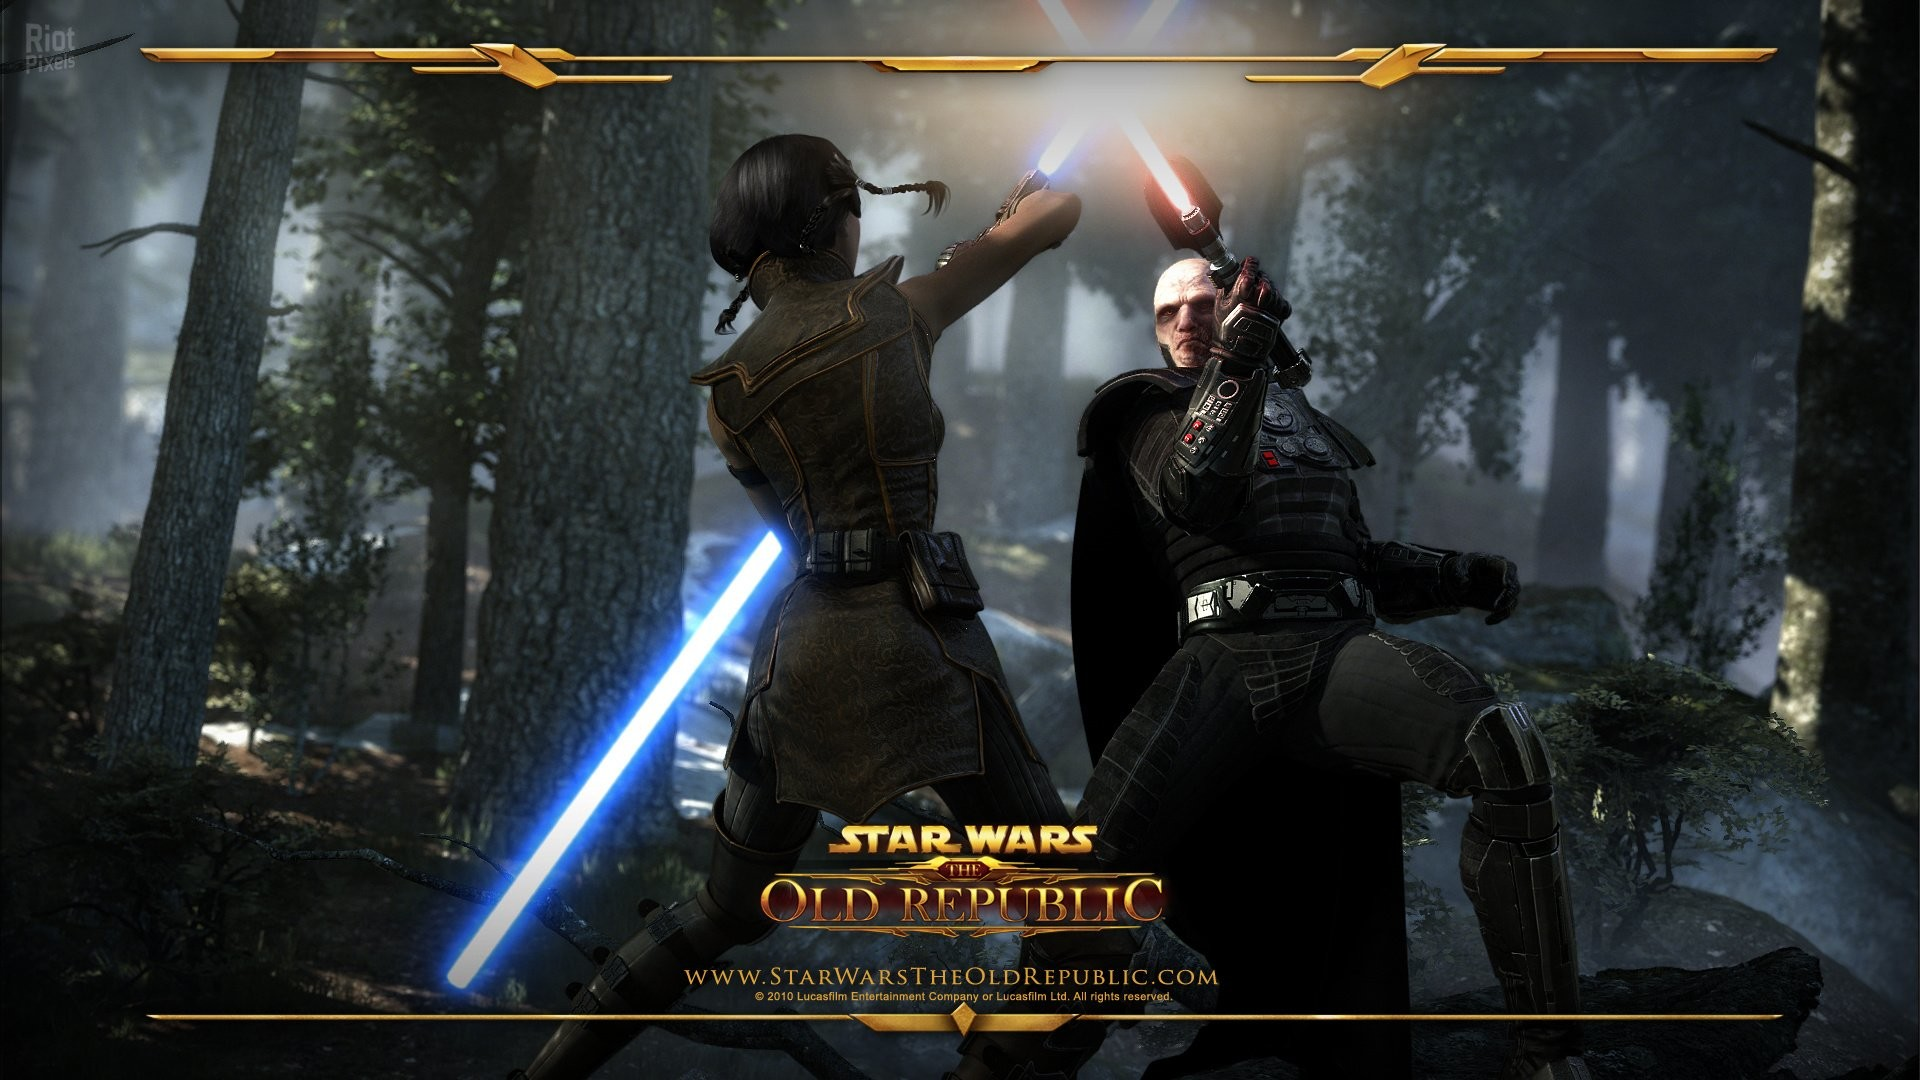 STAR WARS OLD REPUBLIC mmo rpg swtor fighting sci-fi wallpaper      518904   WallpaperUP